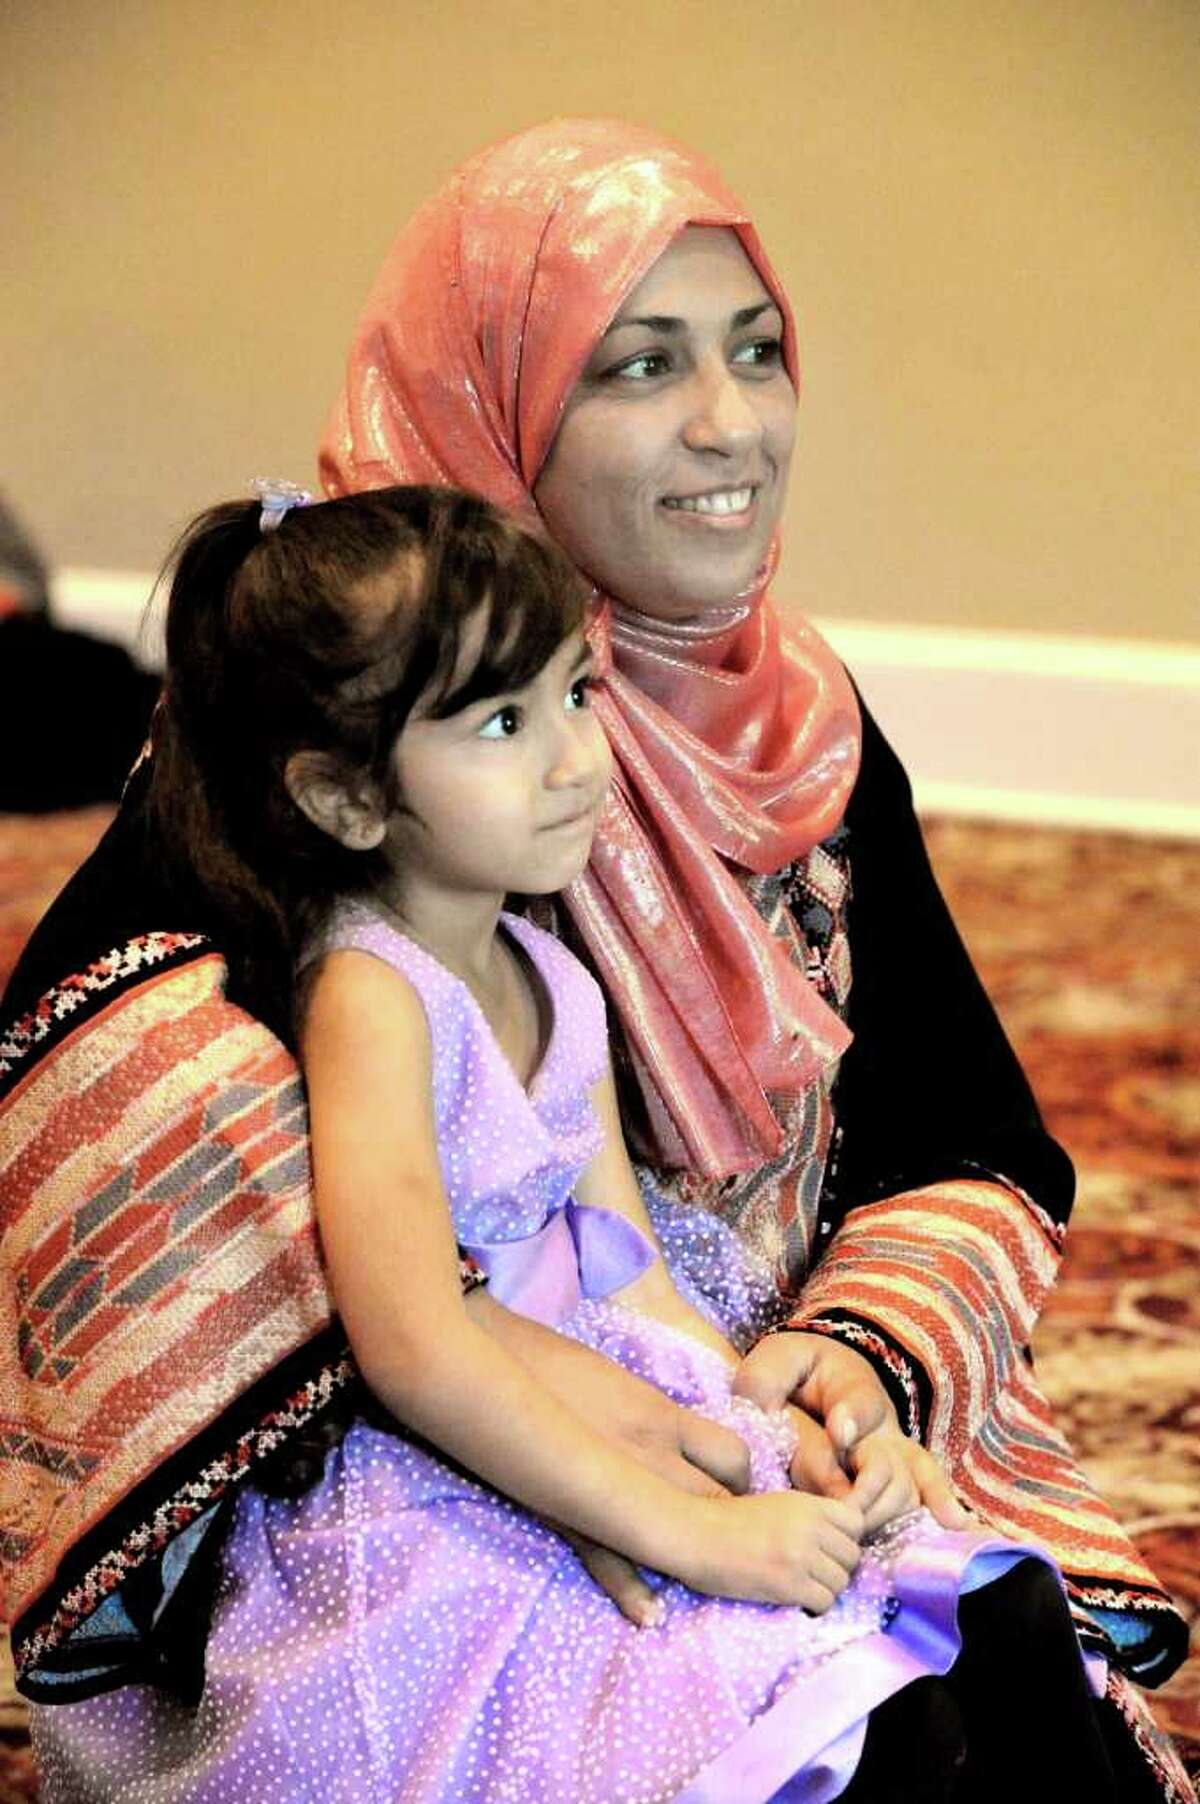 Eman Beshtawii, of Newtown, pictured with her daughter Mariam, says that the 9/11 attacks broke her heart. She cannot accept people hurting one another, she said.